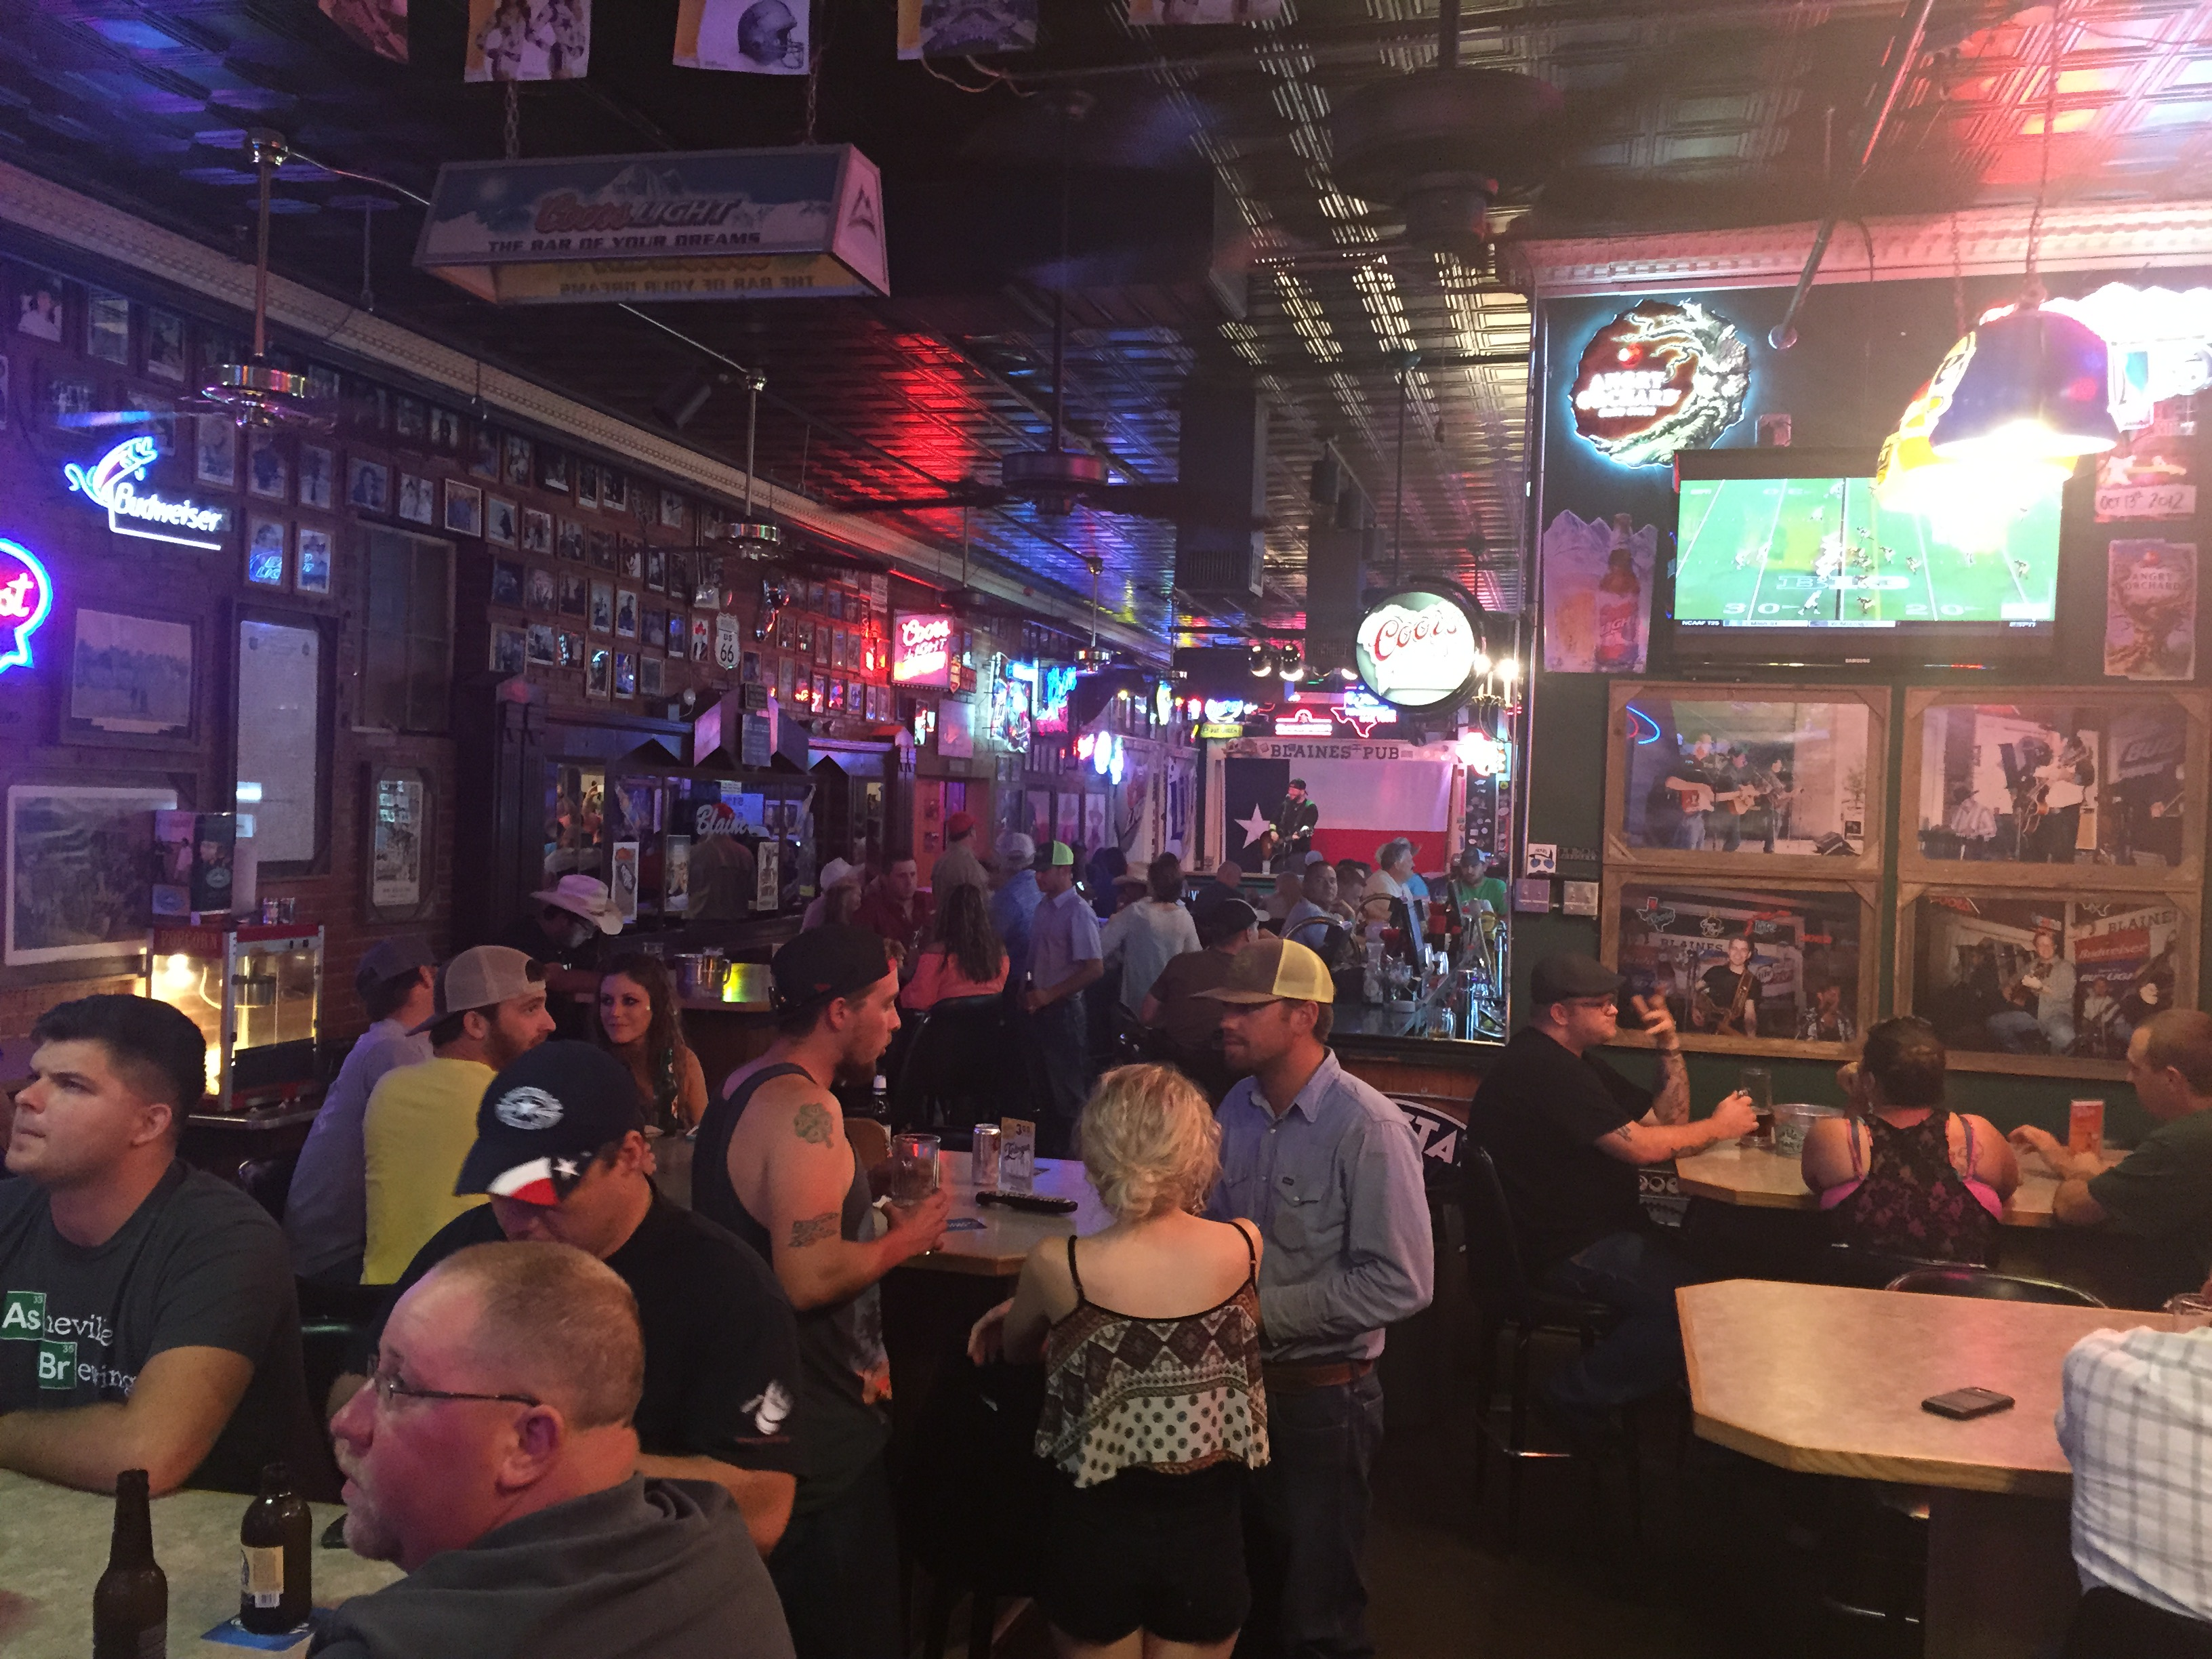 Blaine's Pub in San Angelo, Texas is a storied live music venue